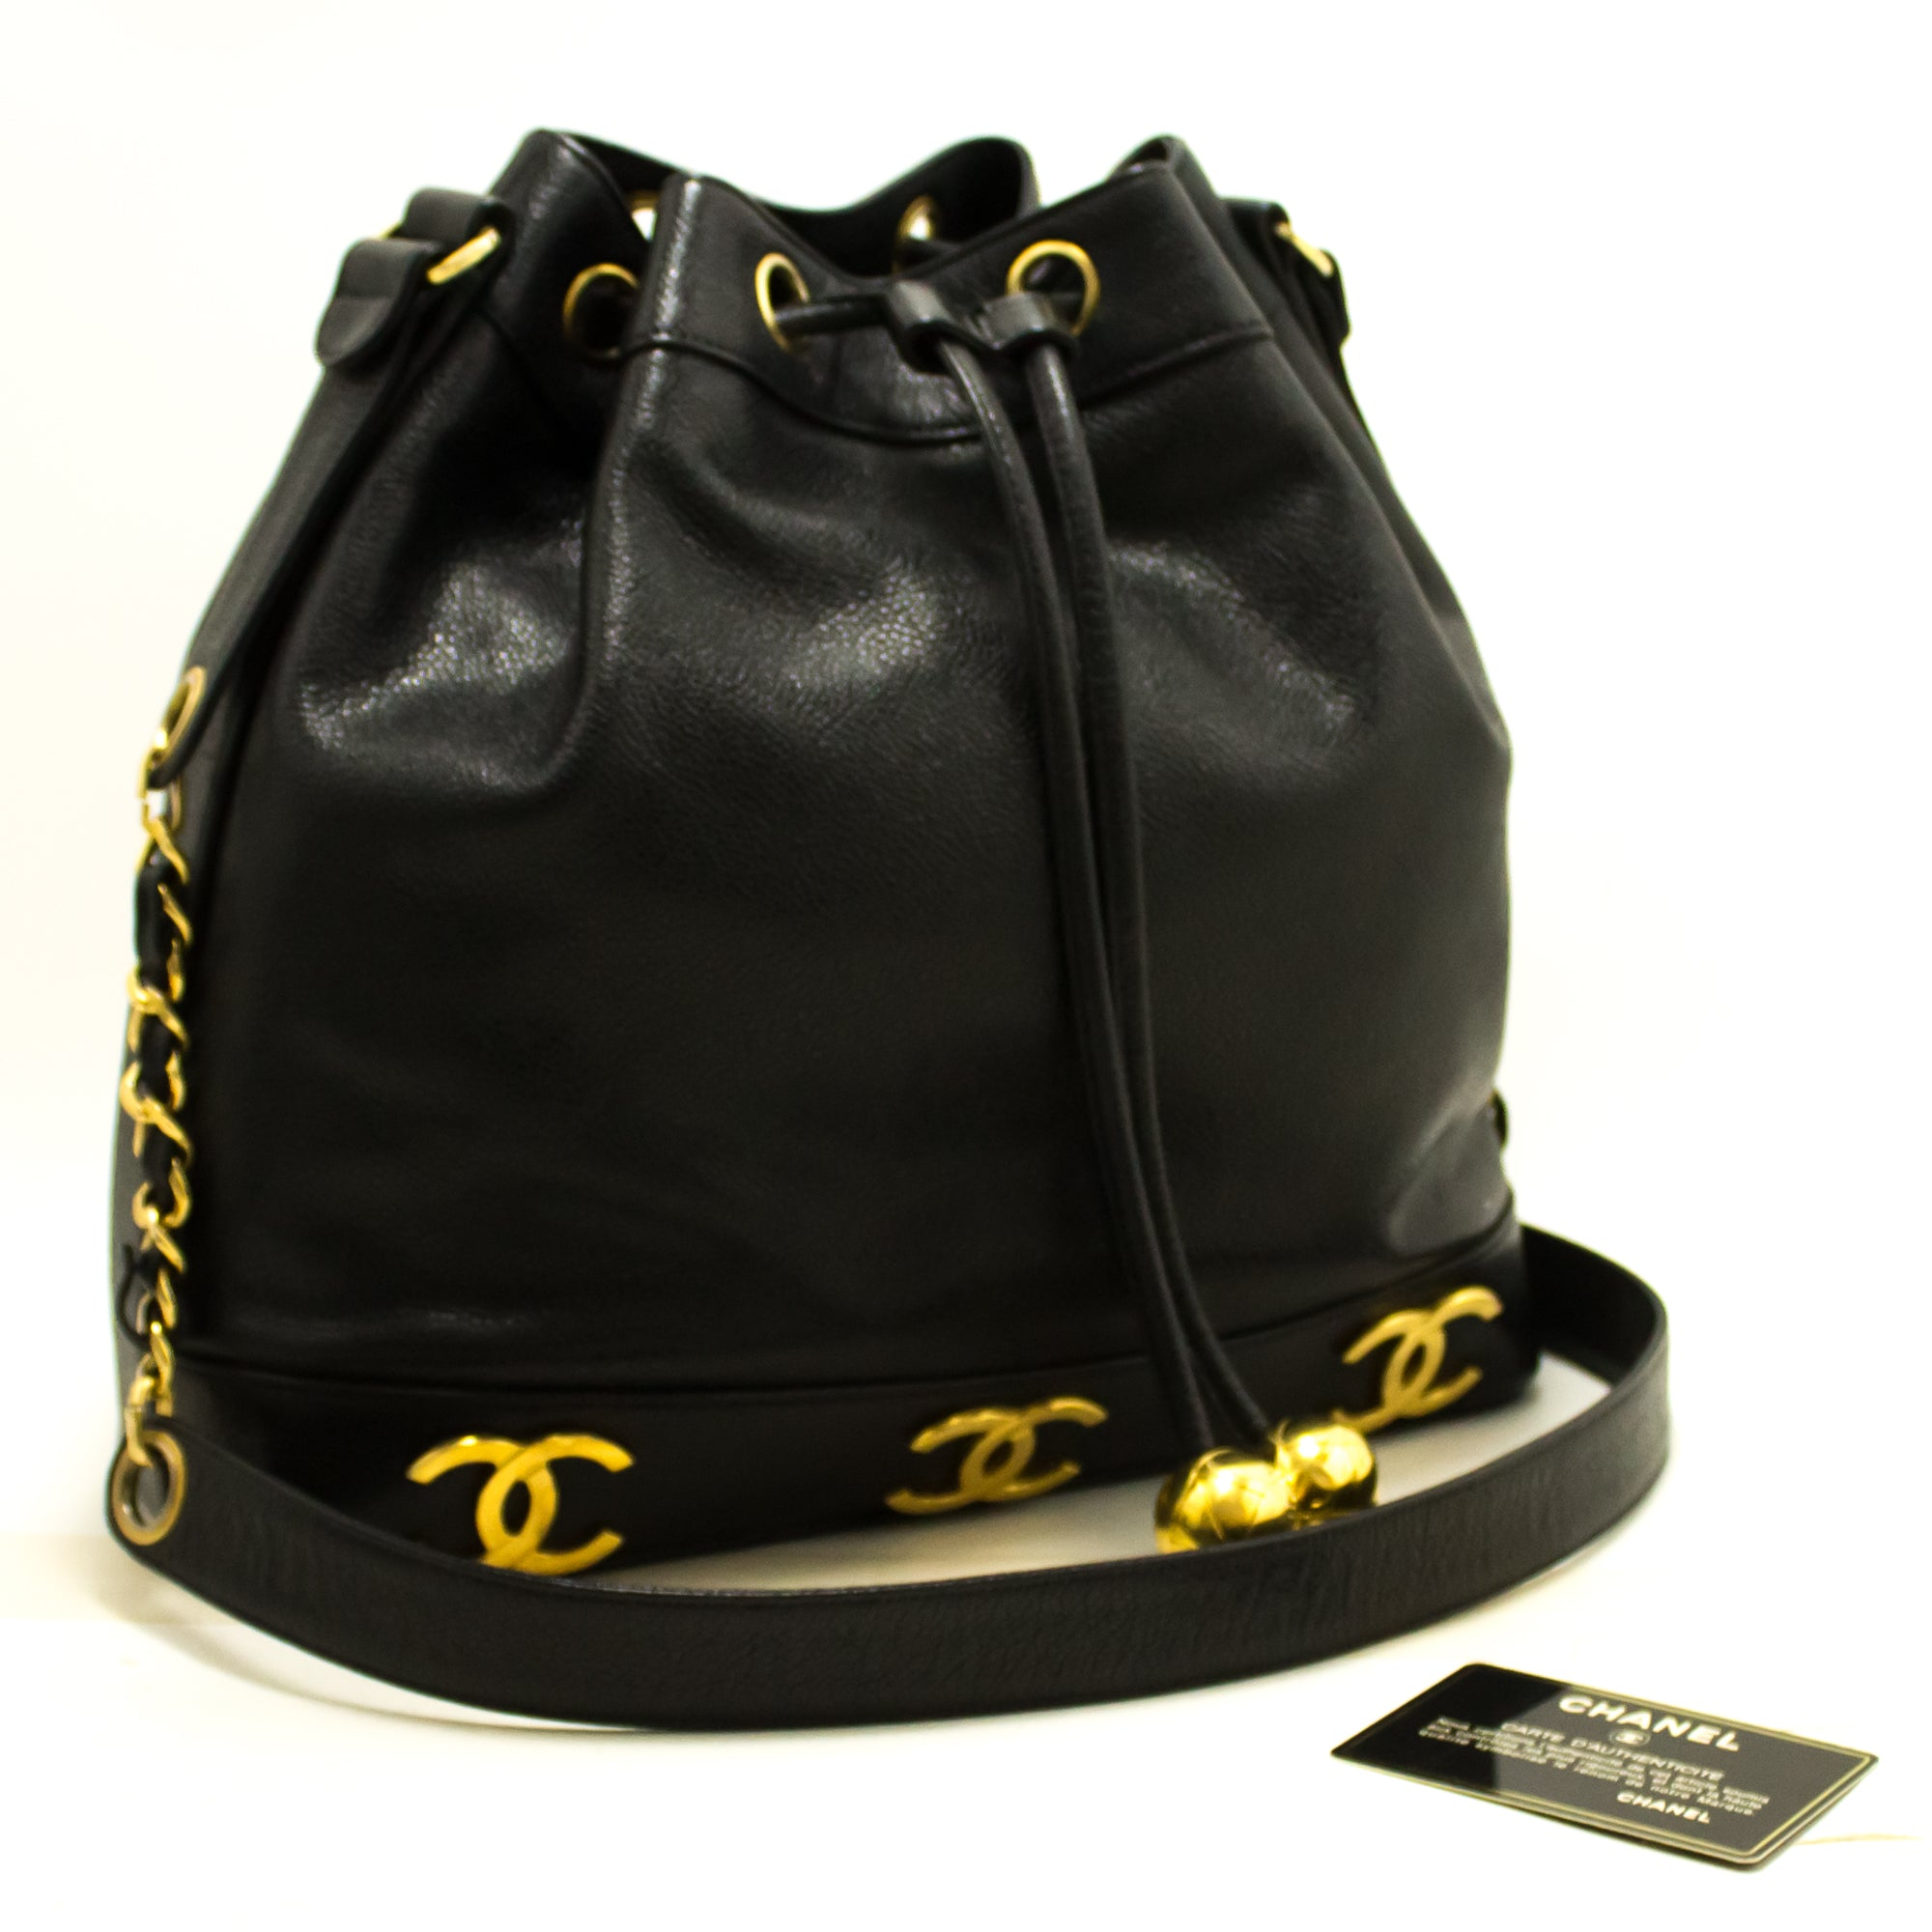 5ab272f33053 ... CHANEL Caviar Drawstring Chain Shoulder Bag Black Triple Coco R21-Chanel-hannari-shop  ...